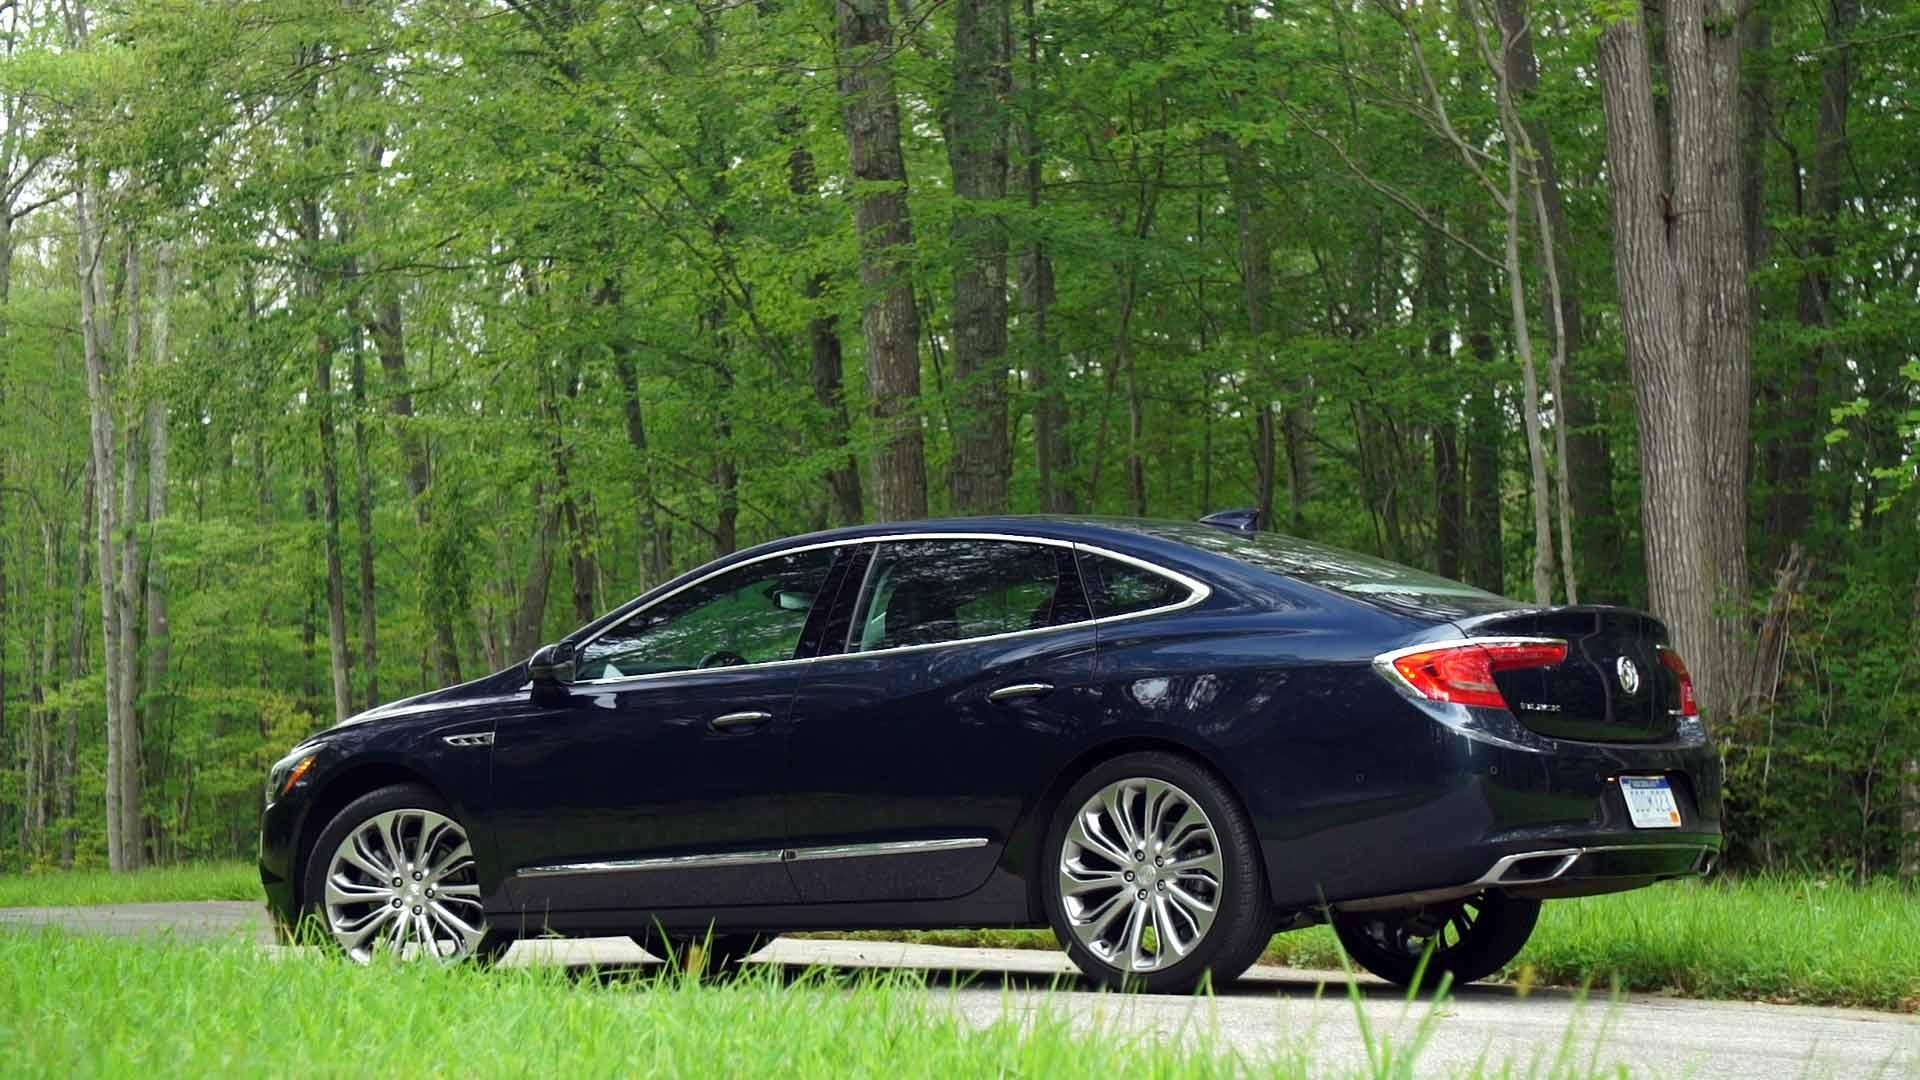 2017 Buick LaCrosse Review: Building on Tradition